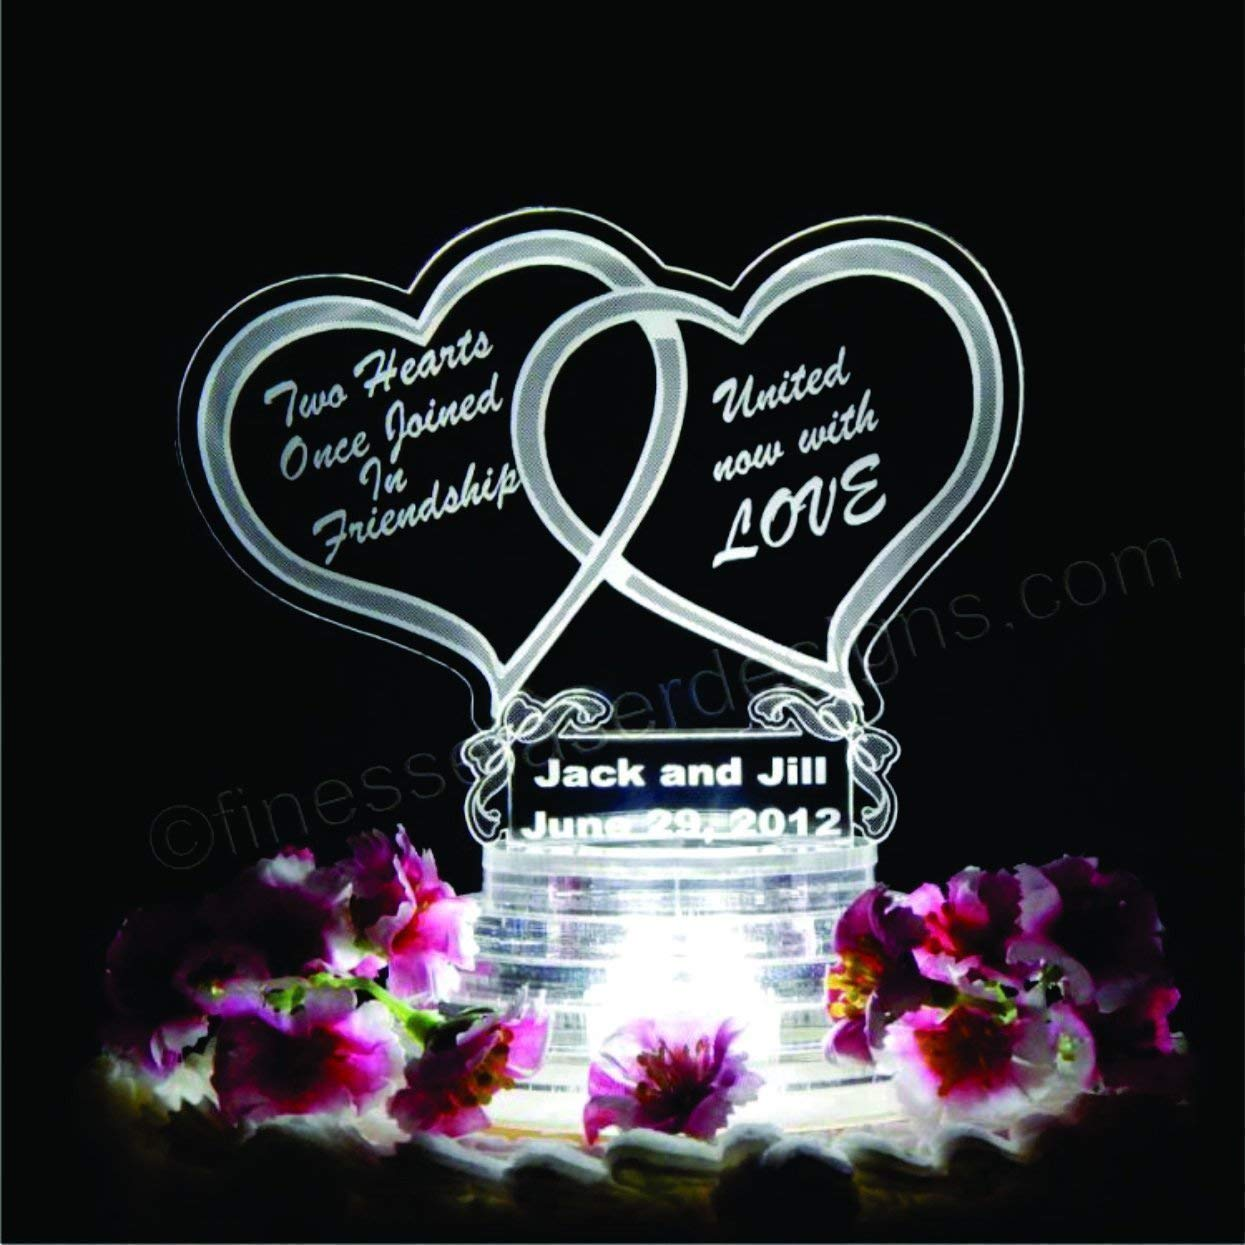 B016CATQO2 Wedding Personalized Custom Double Heart LED Lit Wedding Cake Topper Acrylic Cake Top Personalized, LED and base included 61nrqwm1IeL